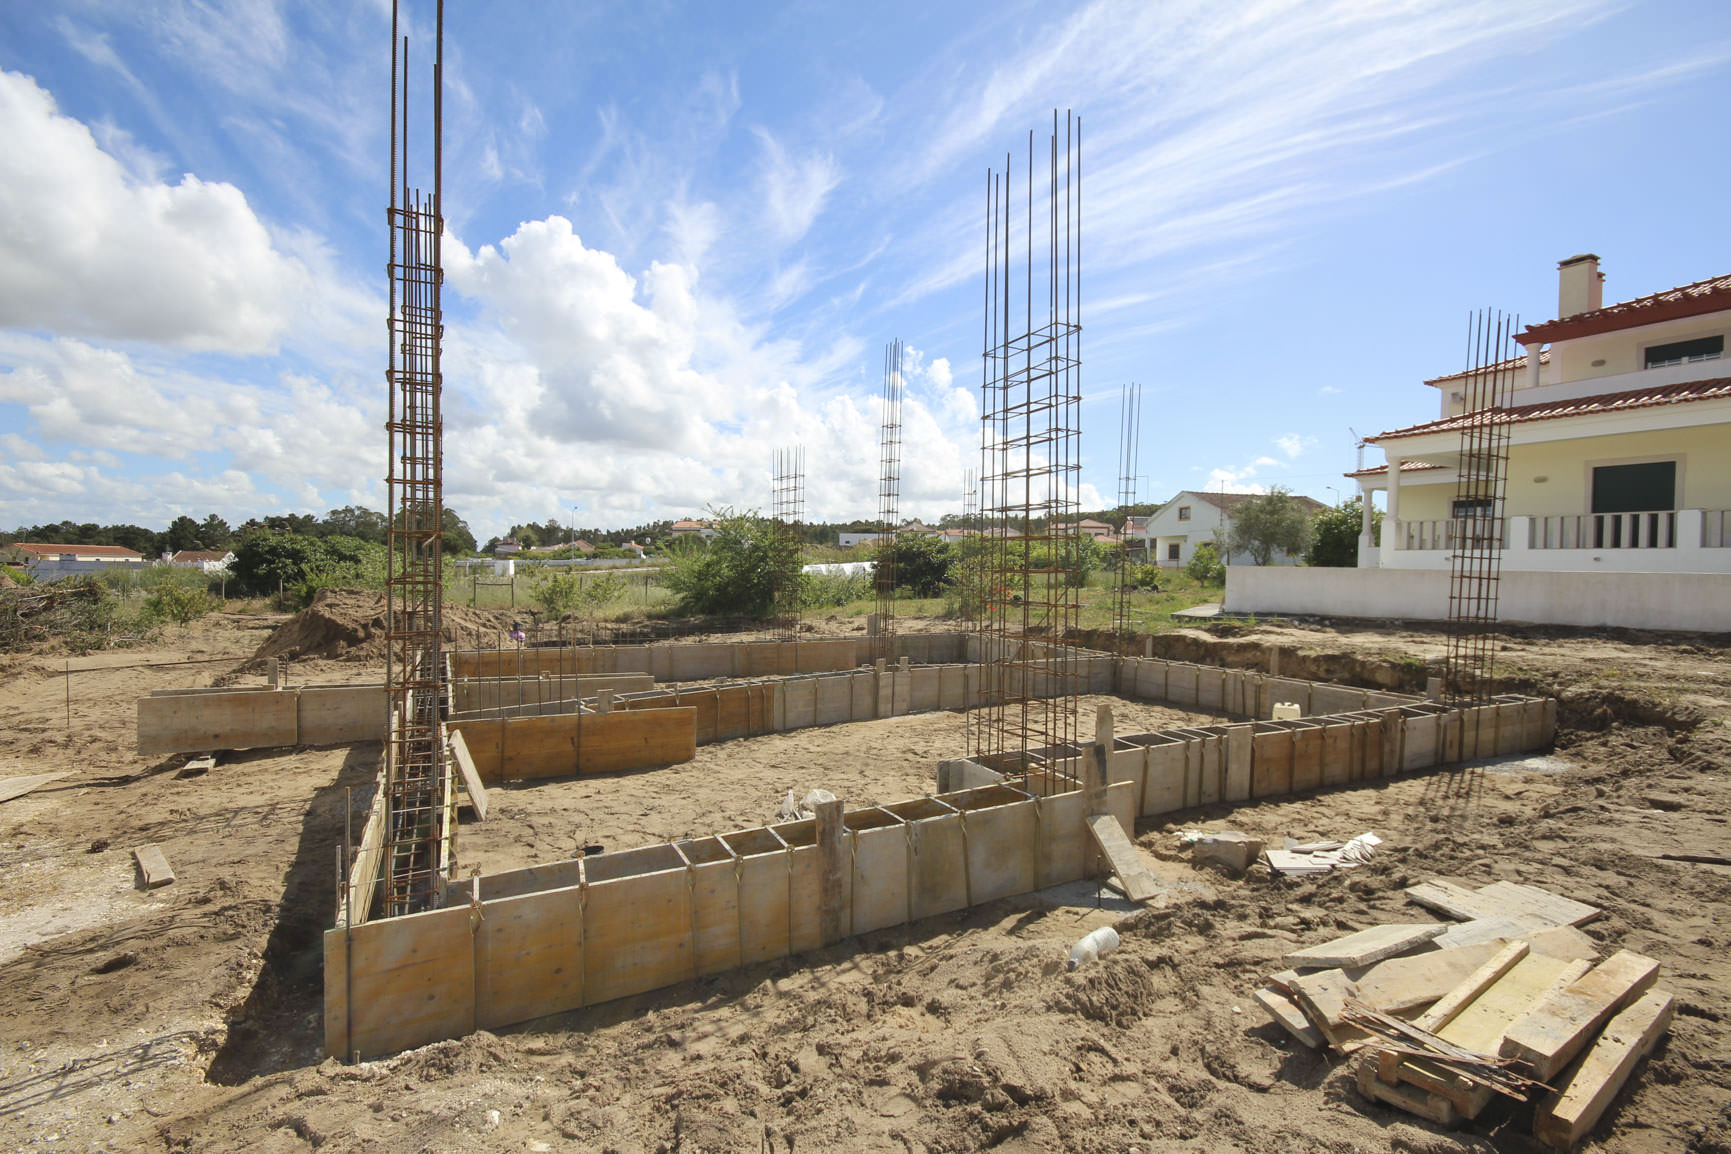 03-portugal-realty-silver-coast-property-for-sale-presprop-contsruction-new-build